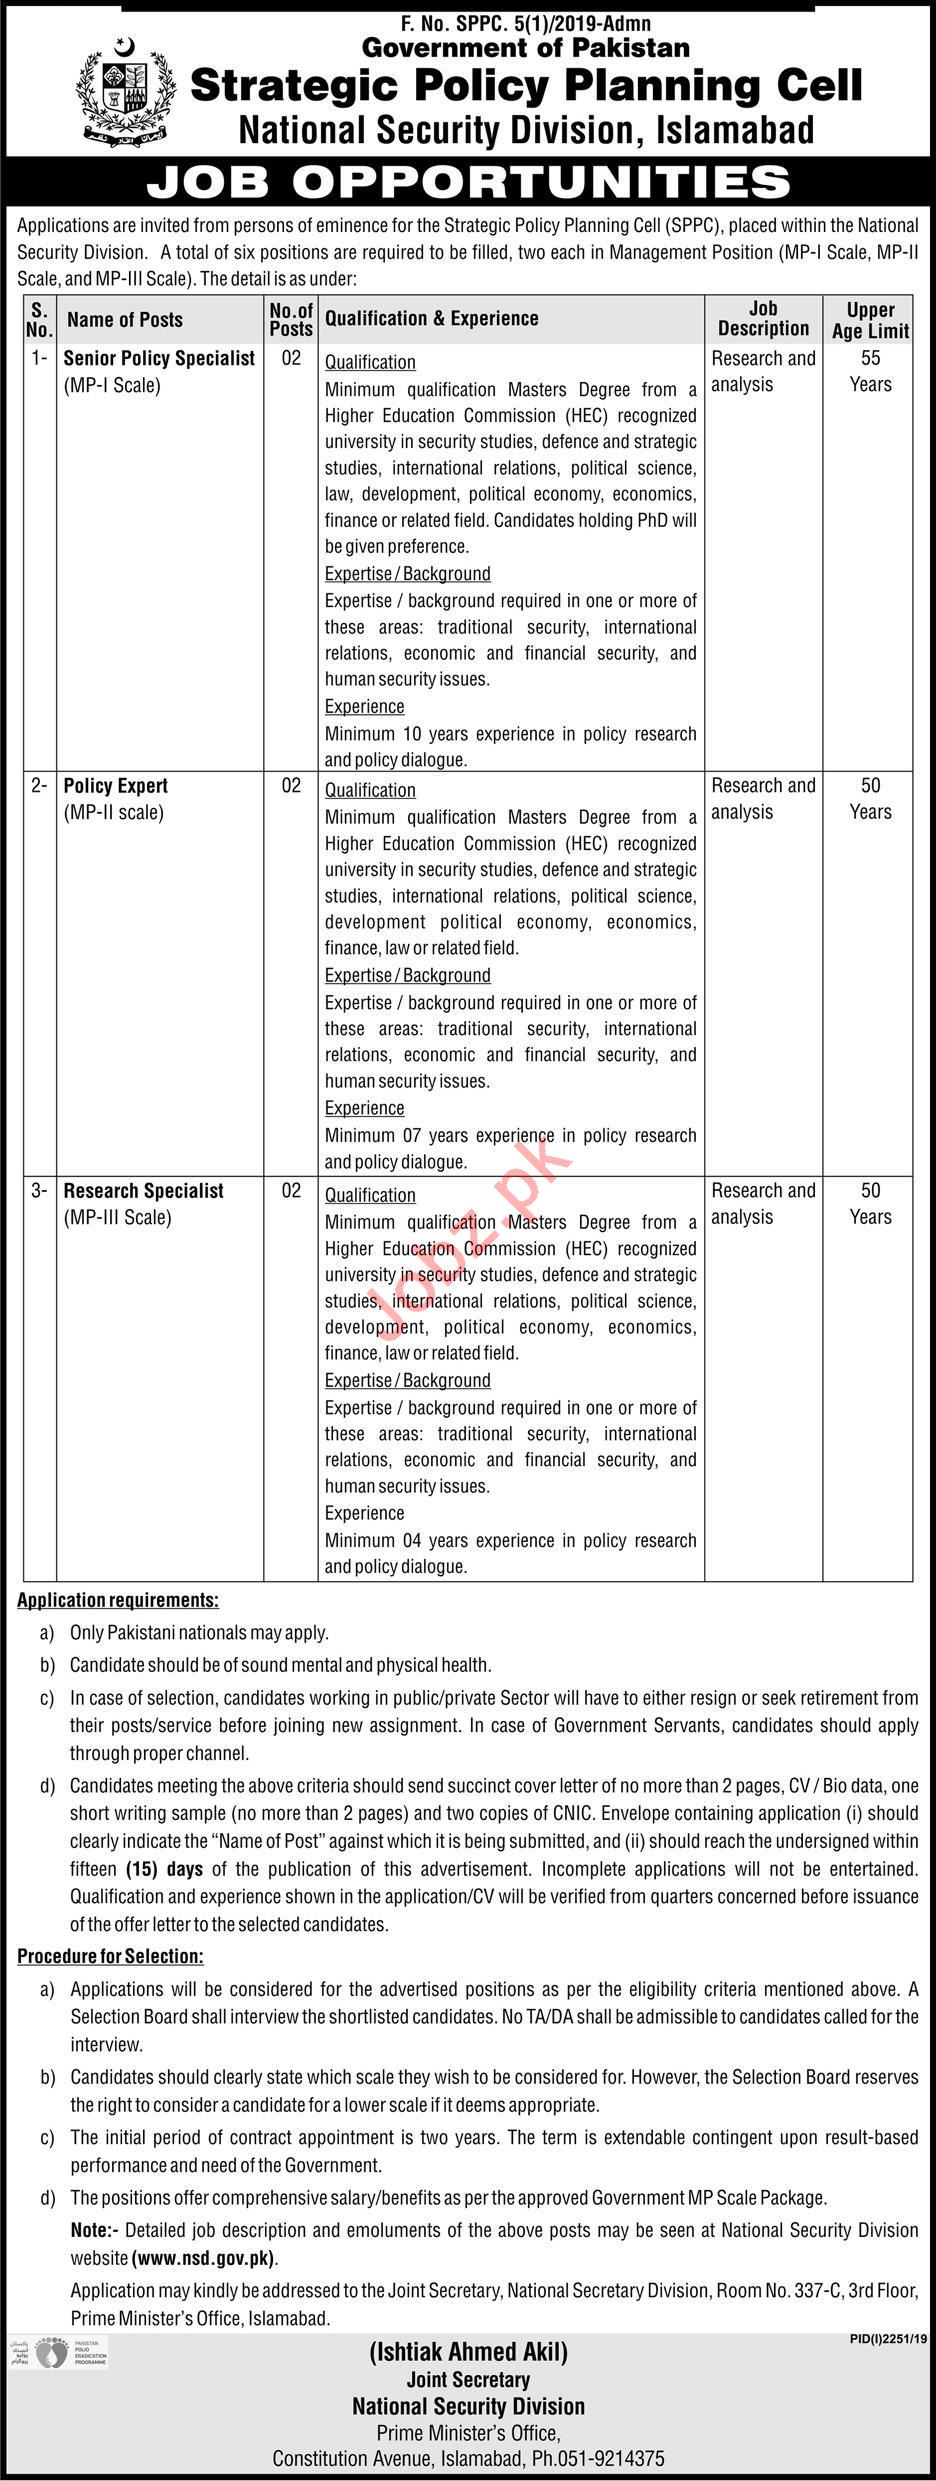 Strategic Policy Planning Cell Jobs in Islamabad